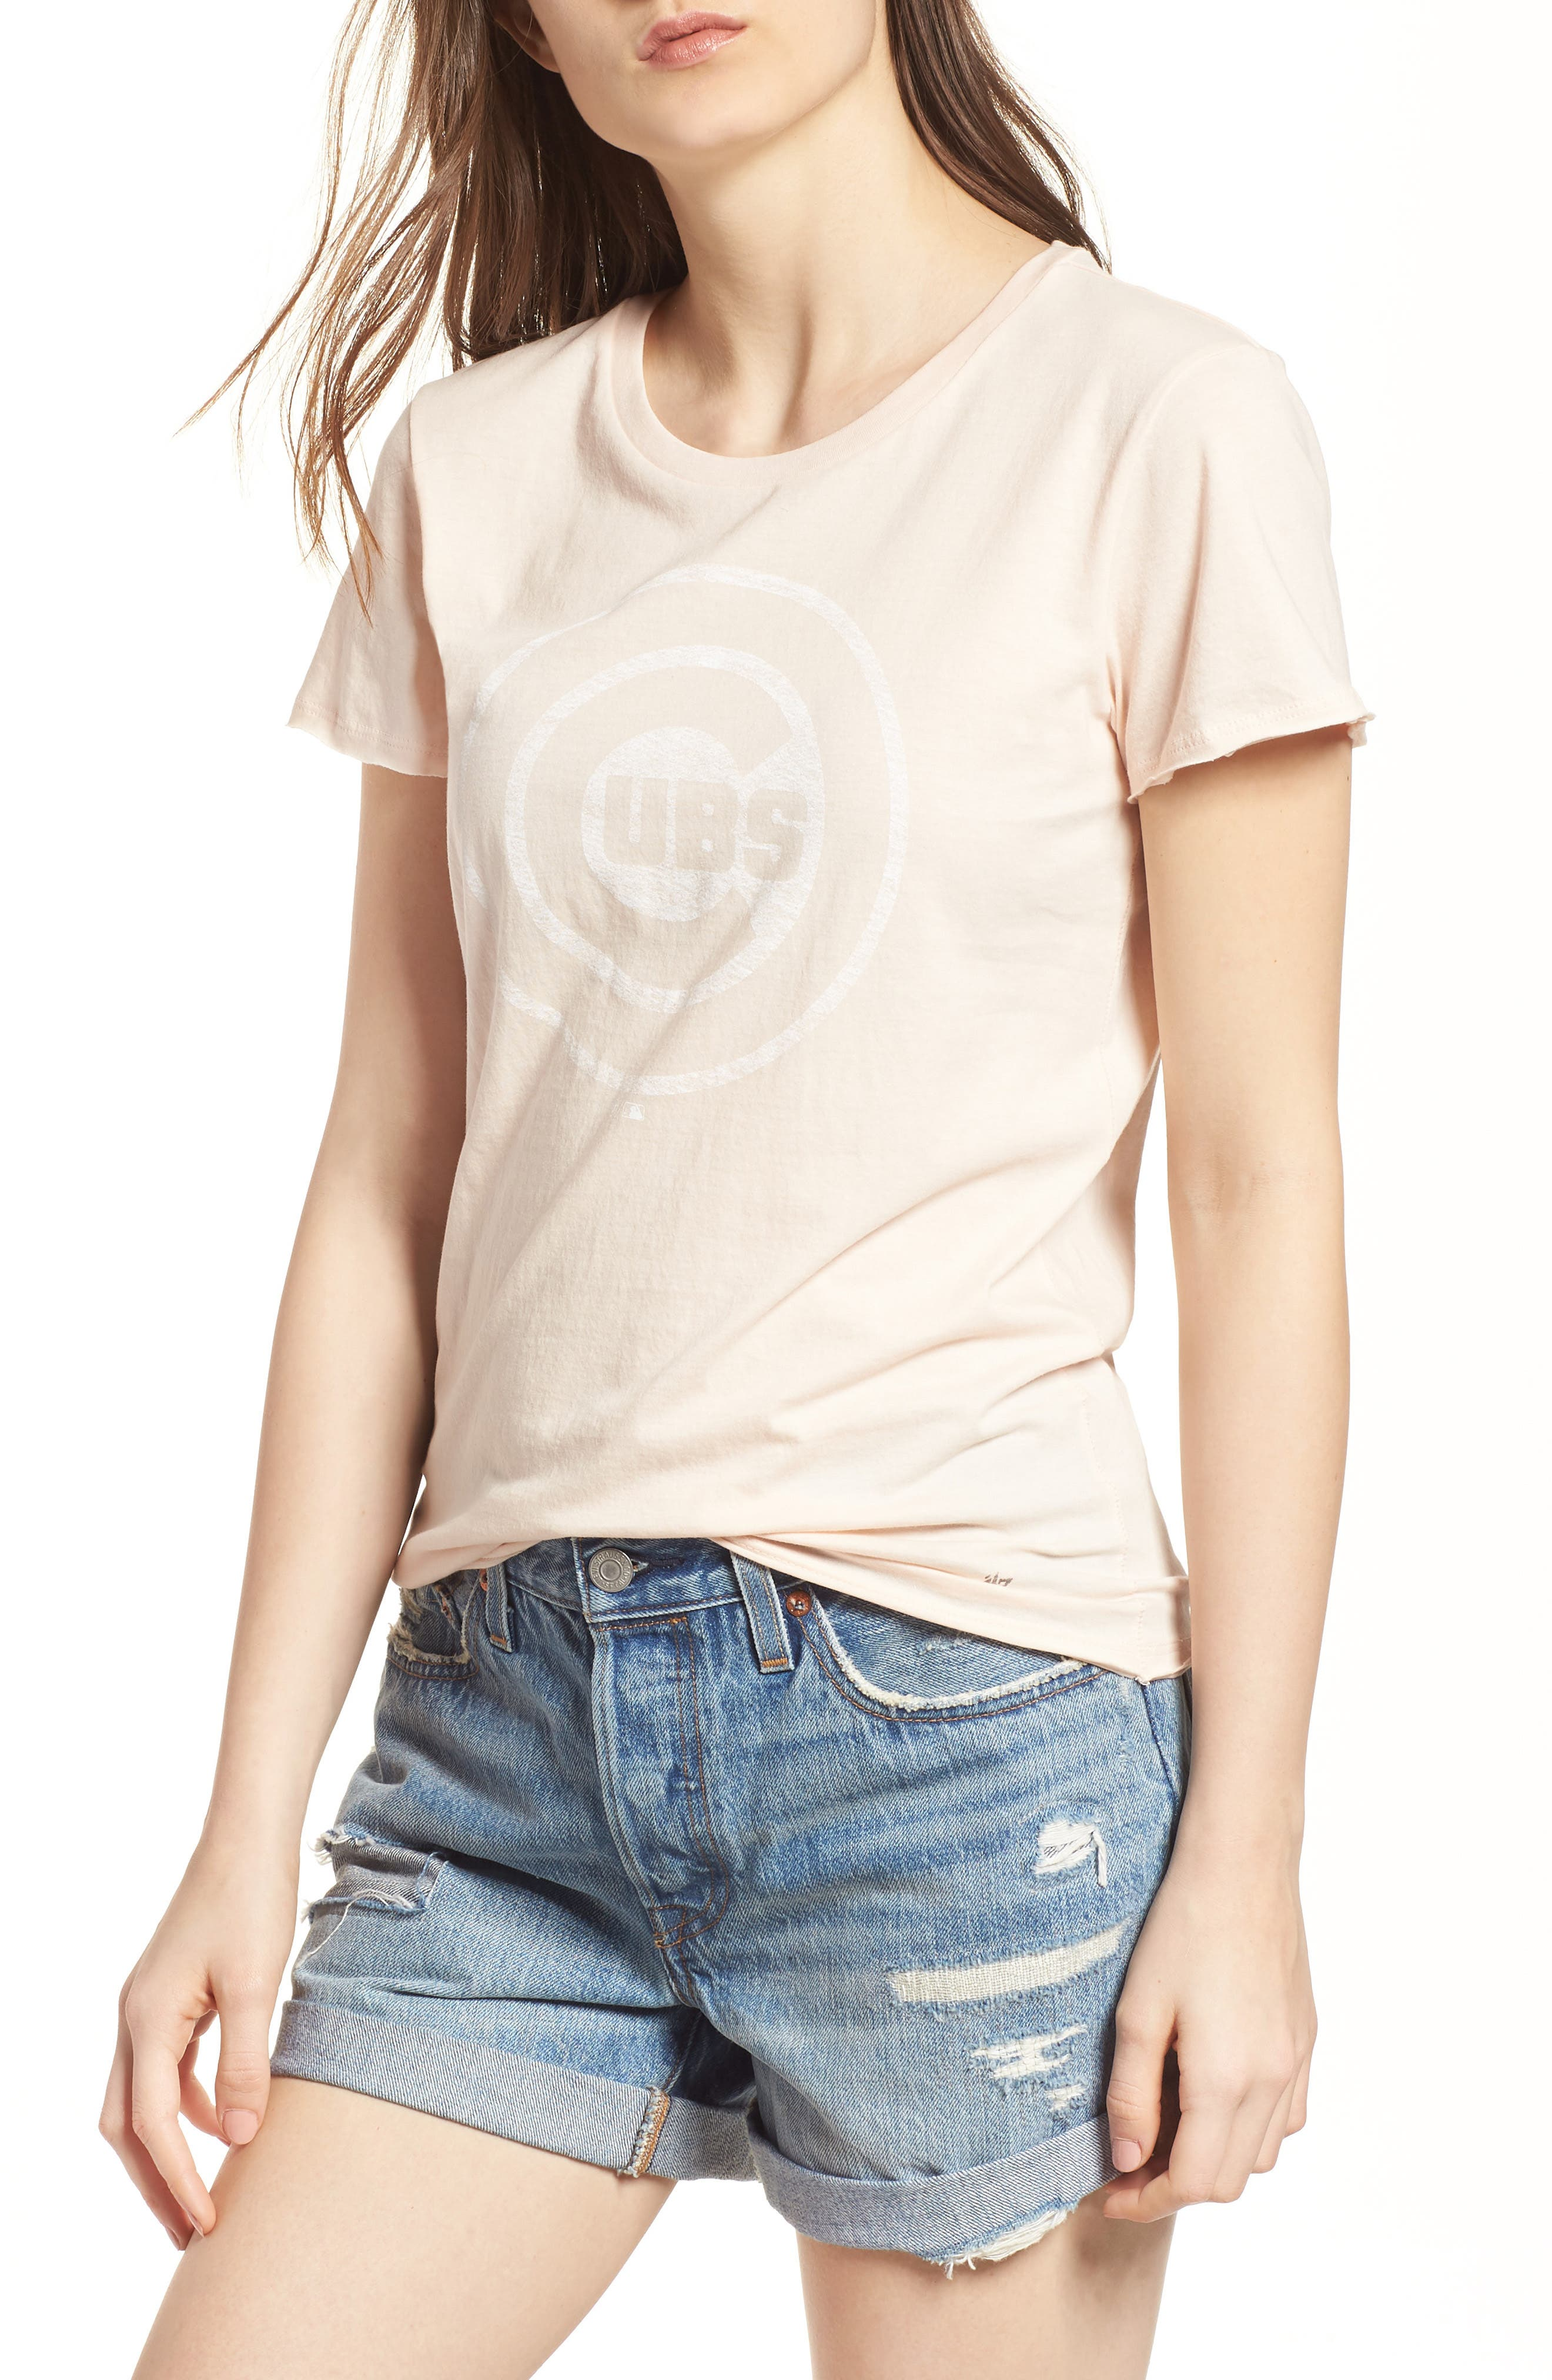 Chicago Cubs Fader Letter Tee,                             Main thumbnail 1, color,                             Blush